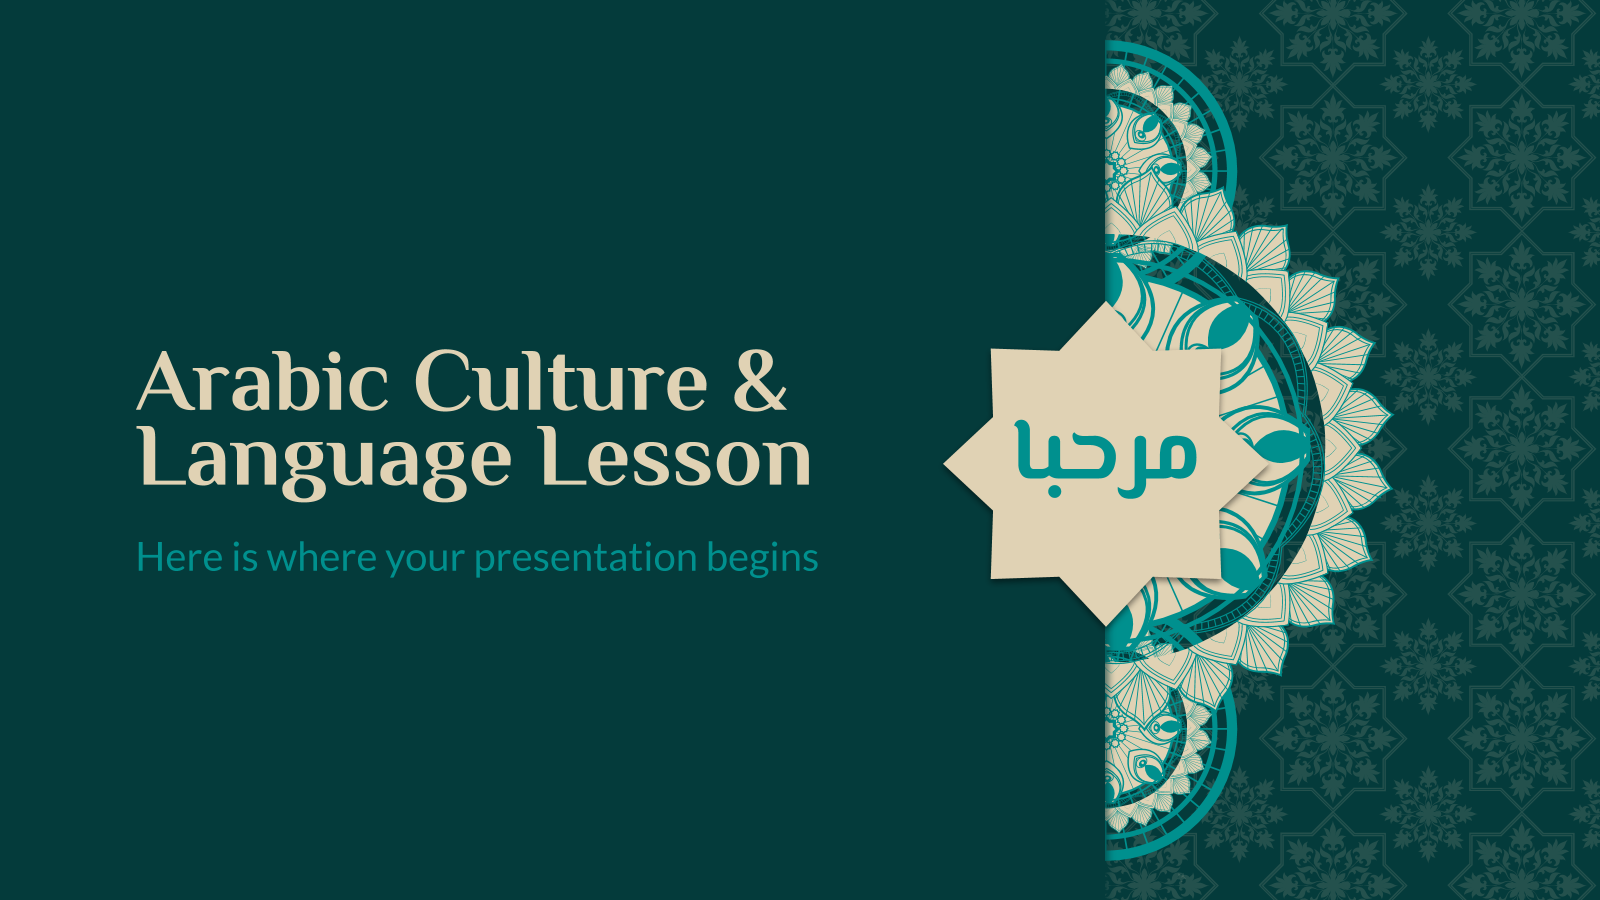 Arabic Culture & Language Lesson presentation template